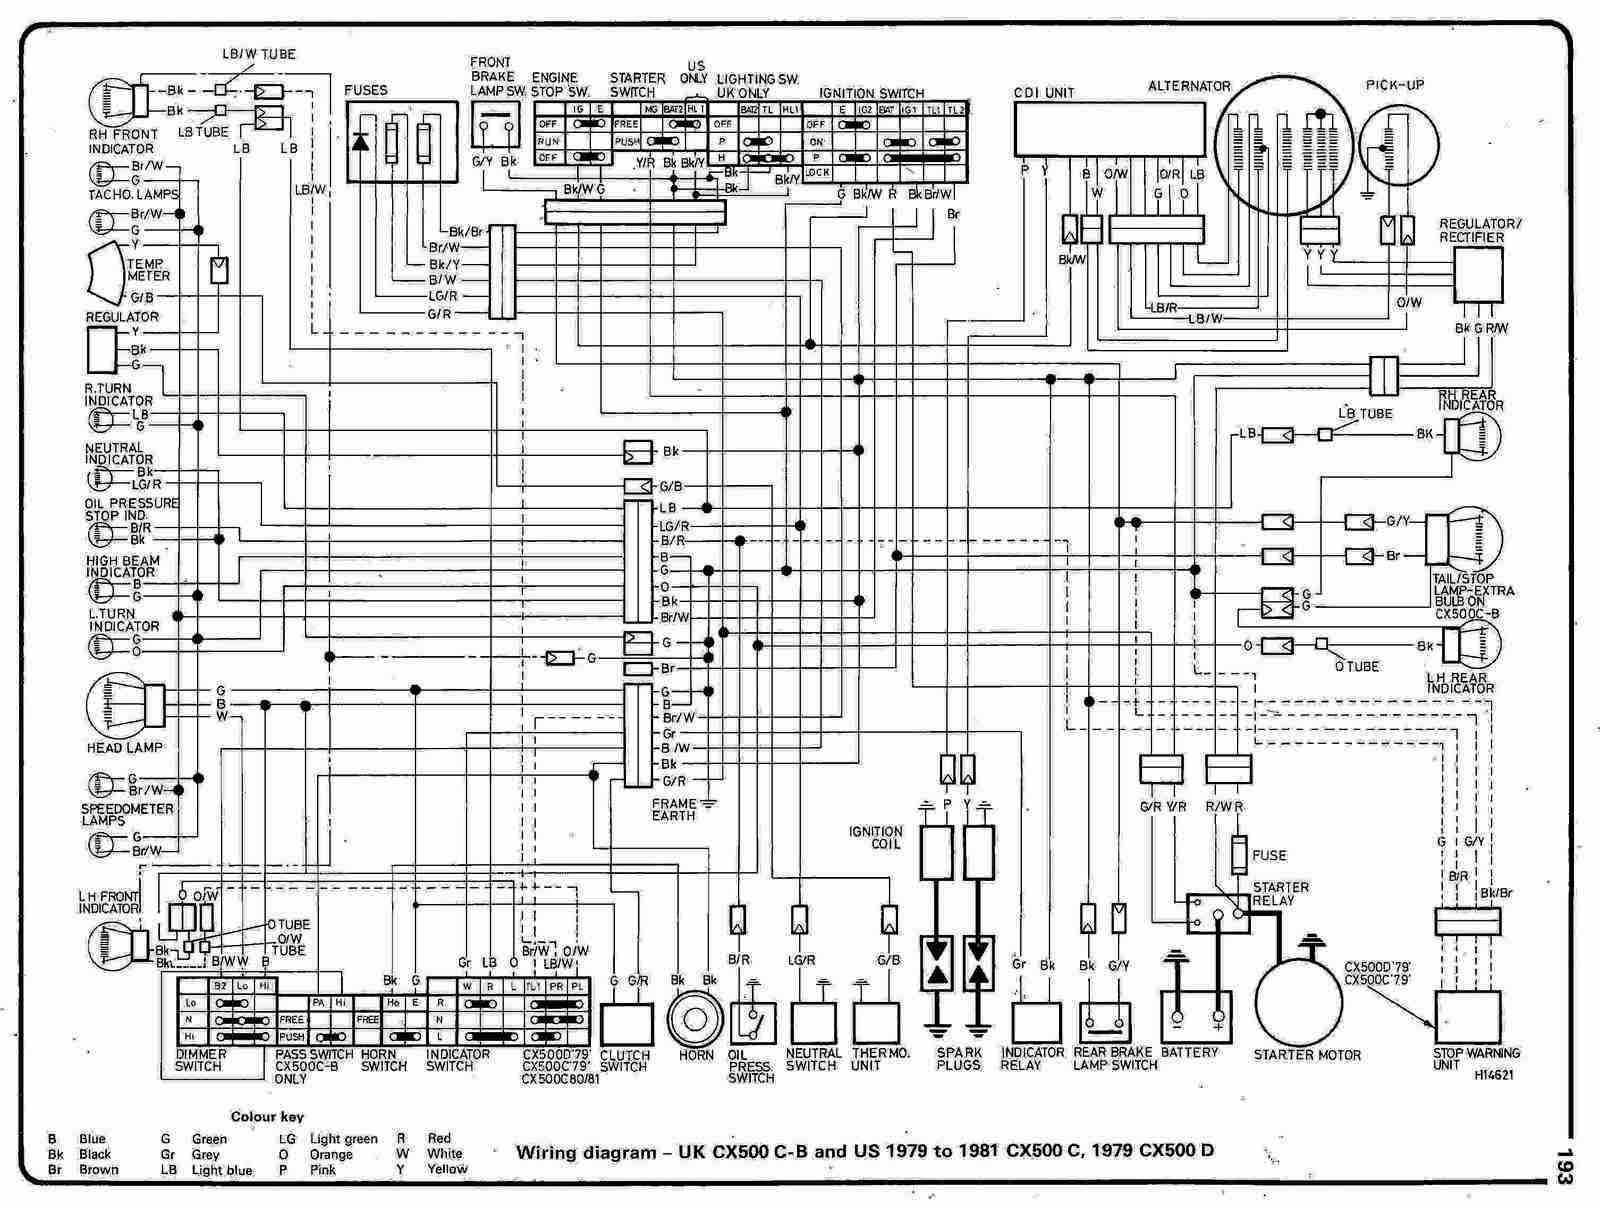 92 Ford Ranger Spark Plug Wiring Diagram from 3.bp.blogspot.com